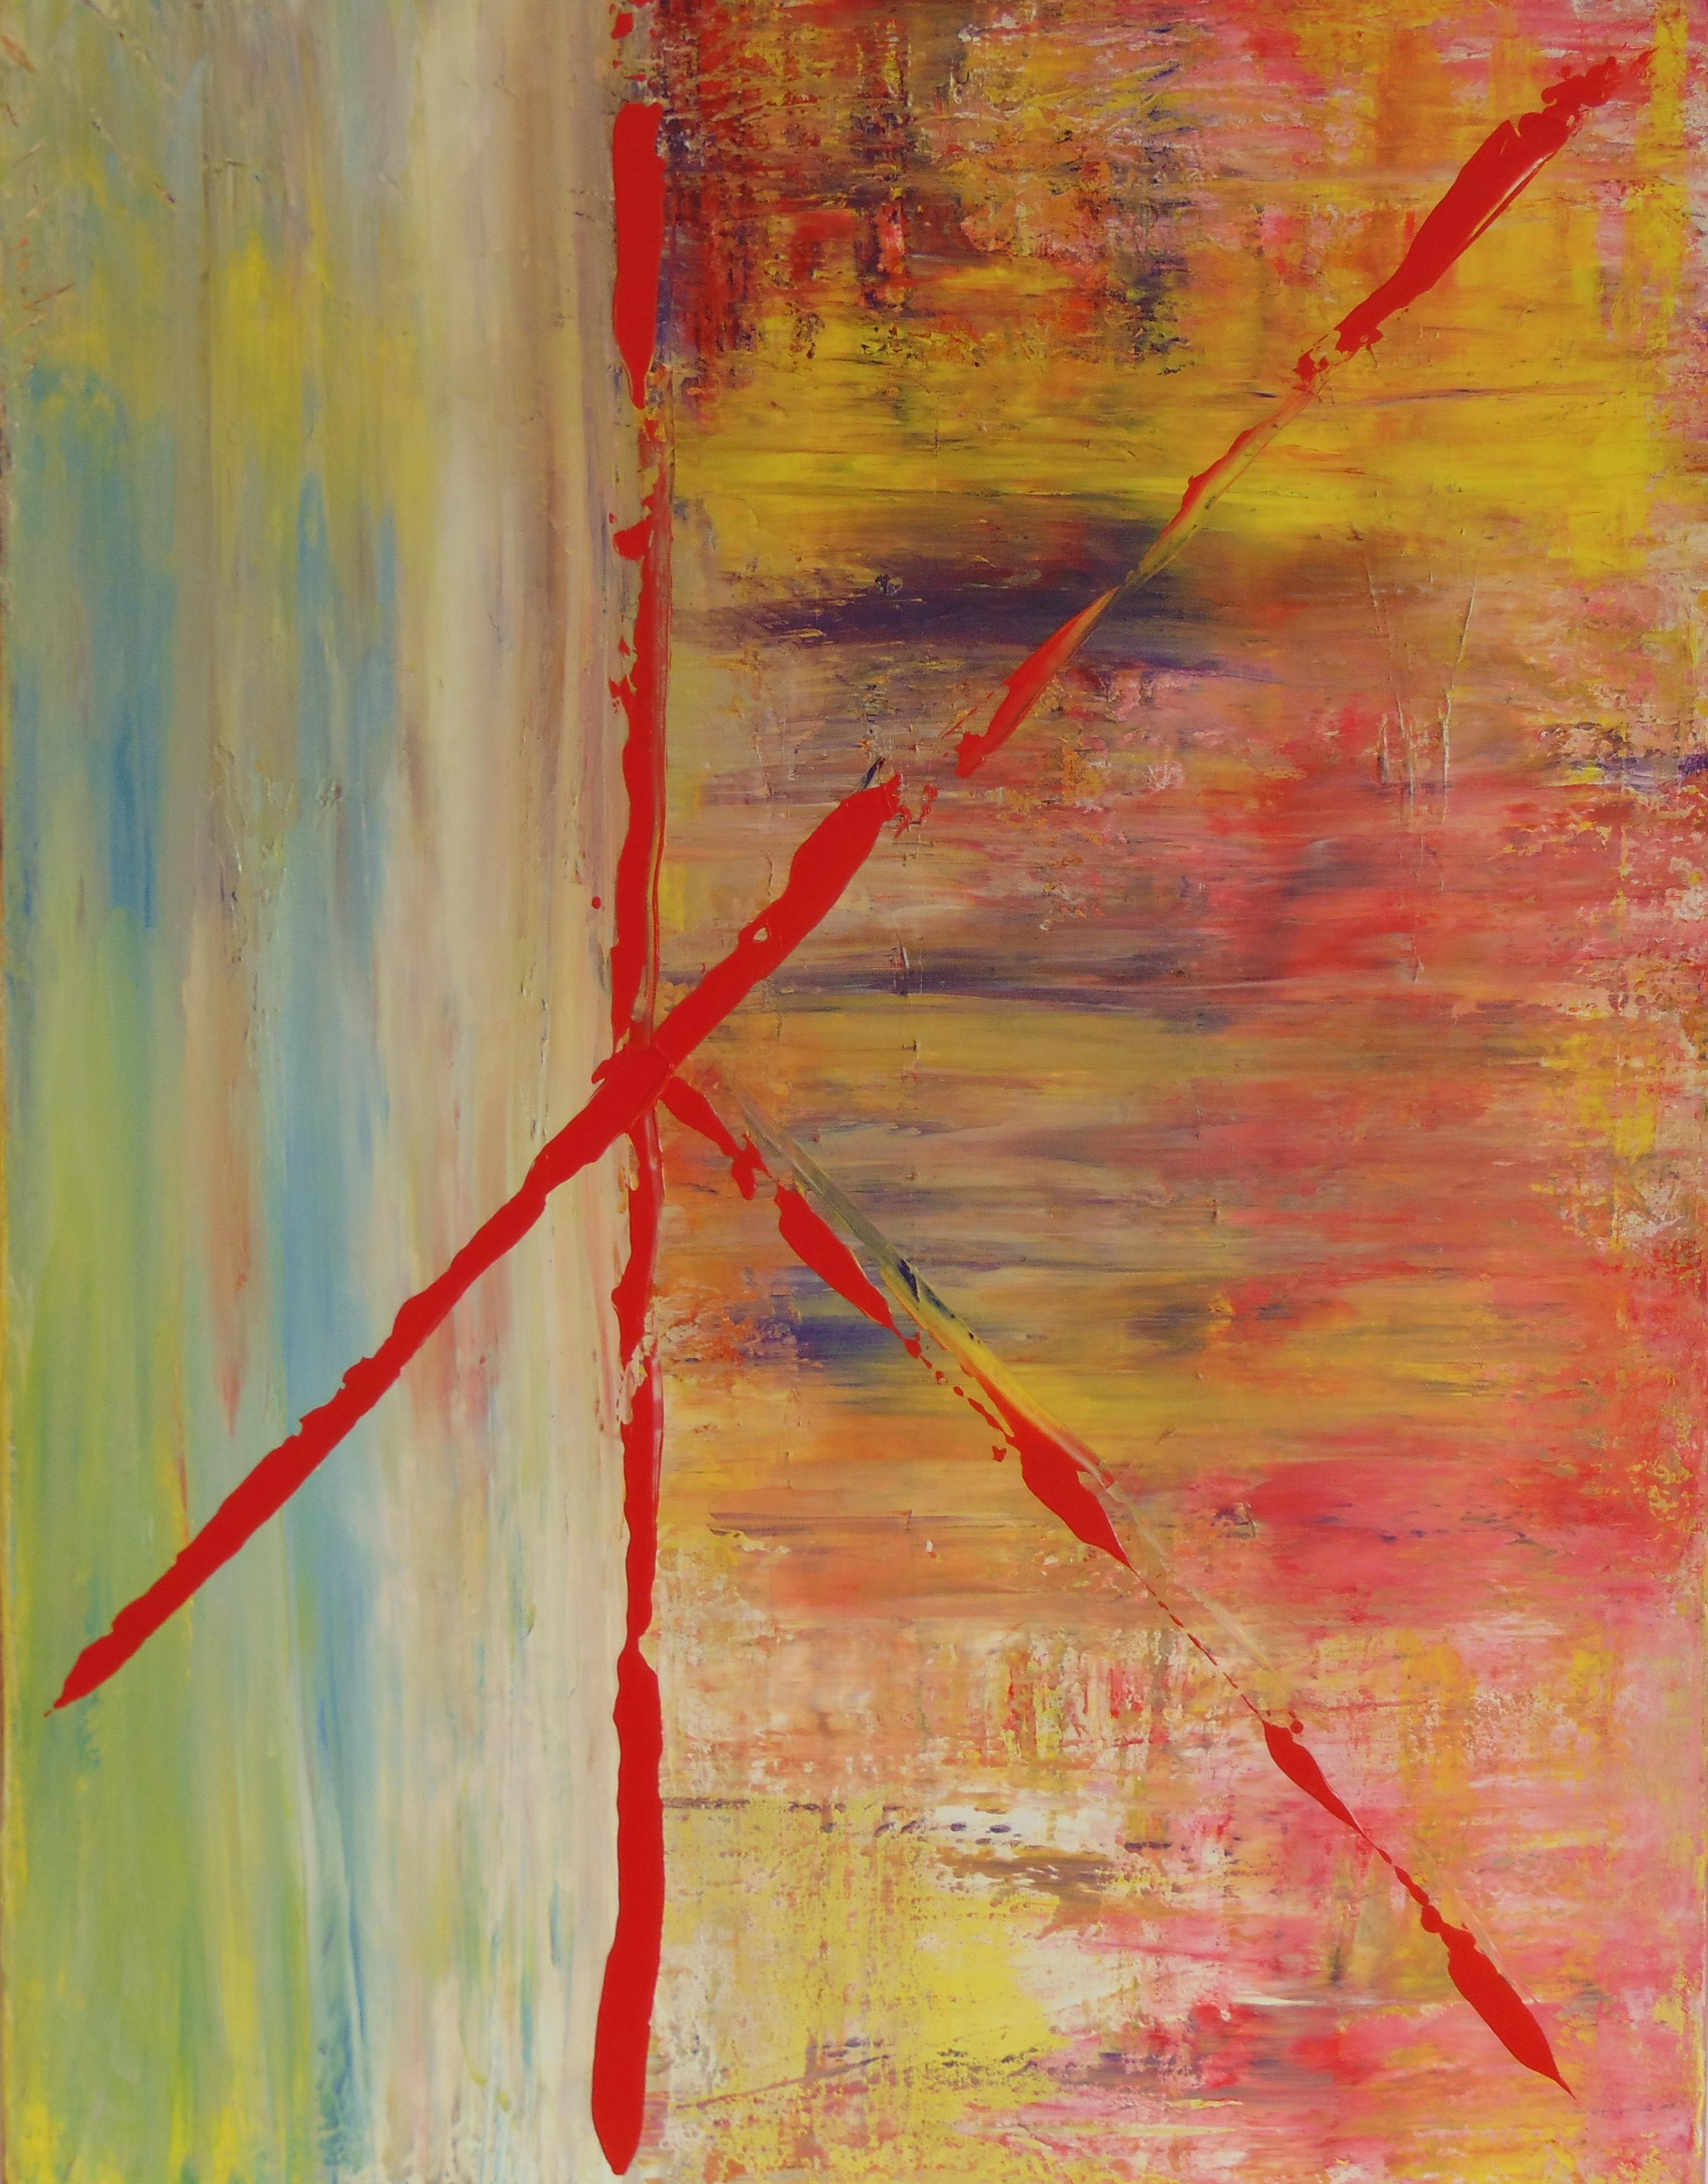 Emotional Painting 'Refraction'